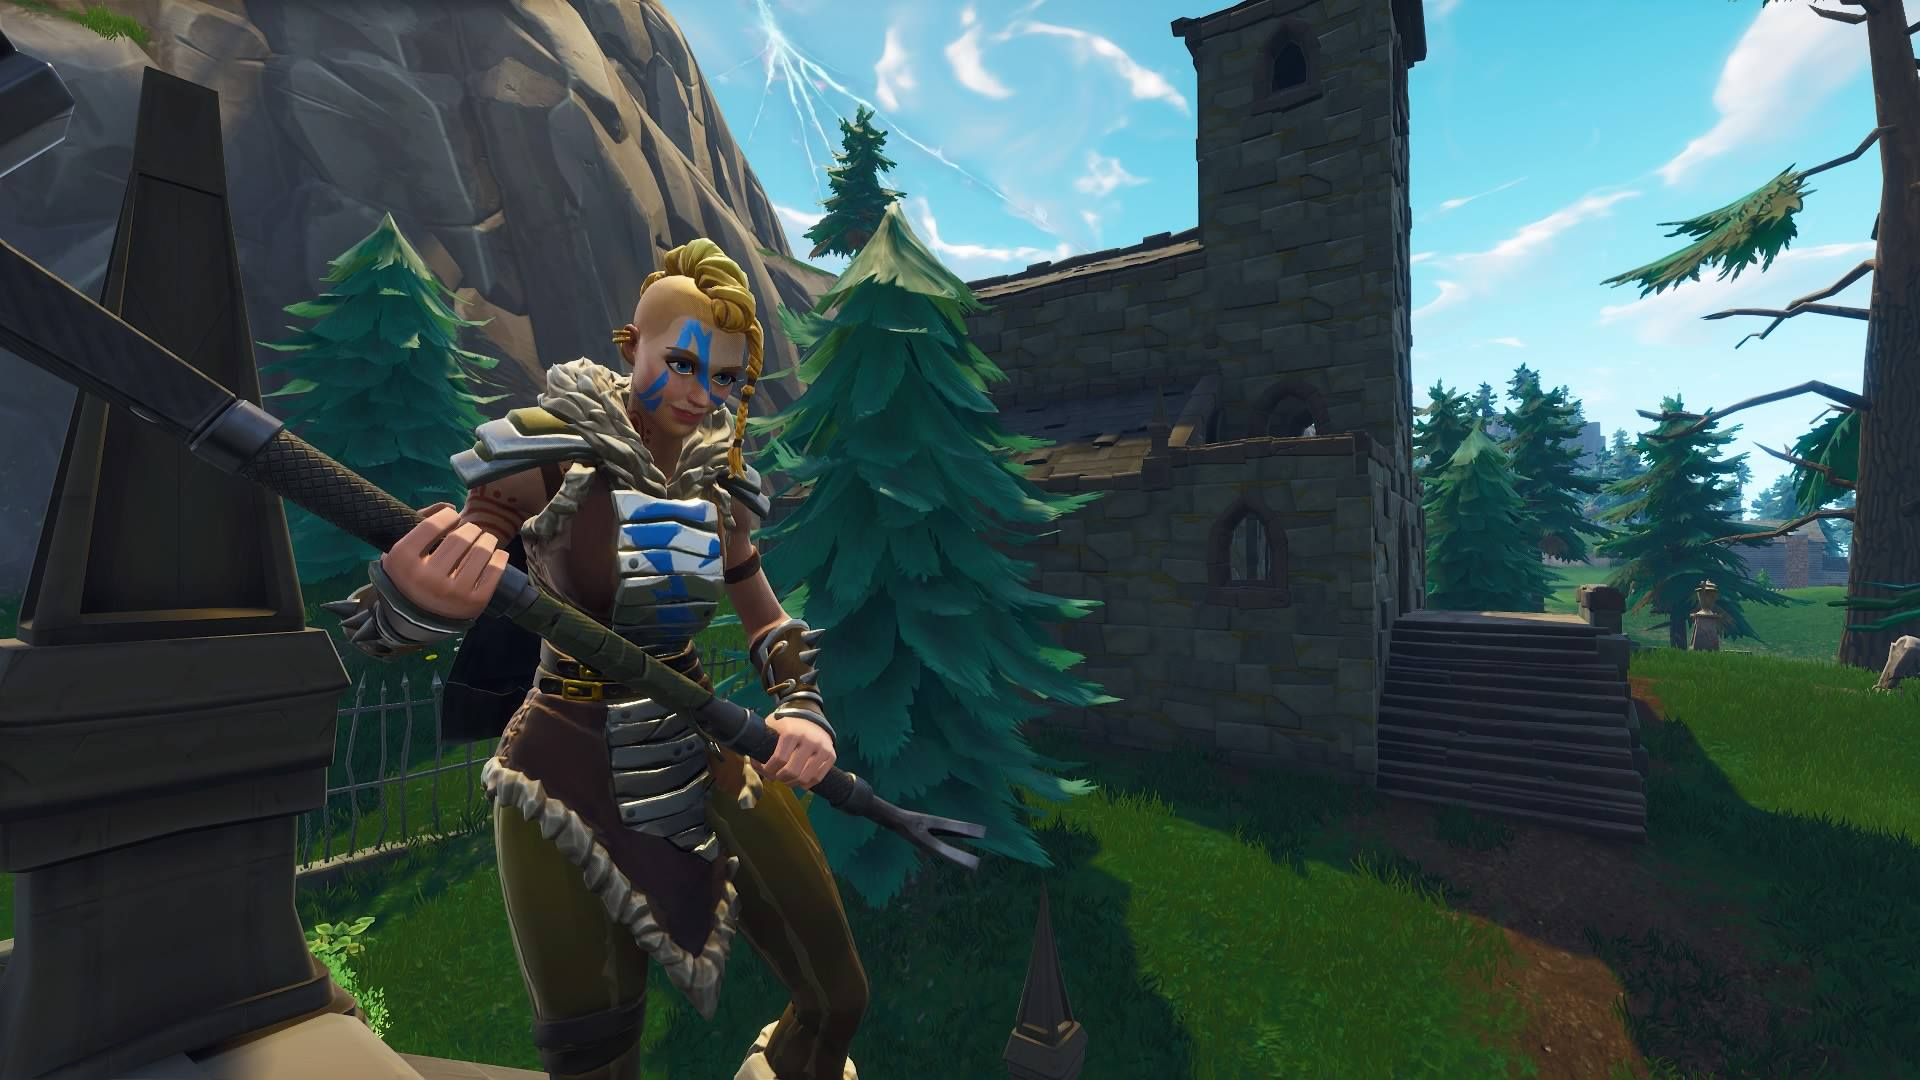 treasure map challenges will probably return to fortnite in season 8 - someone playing fortnite season 8